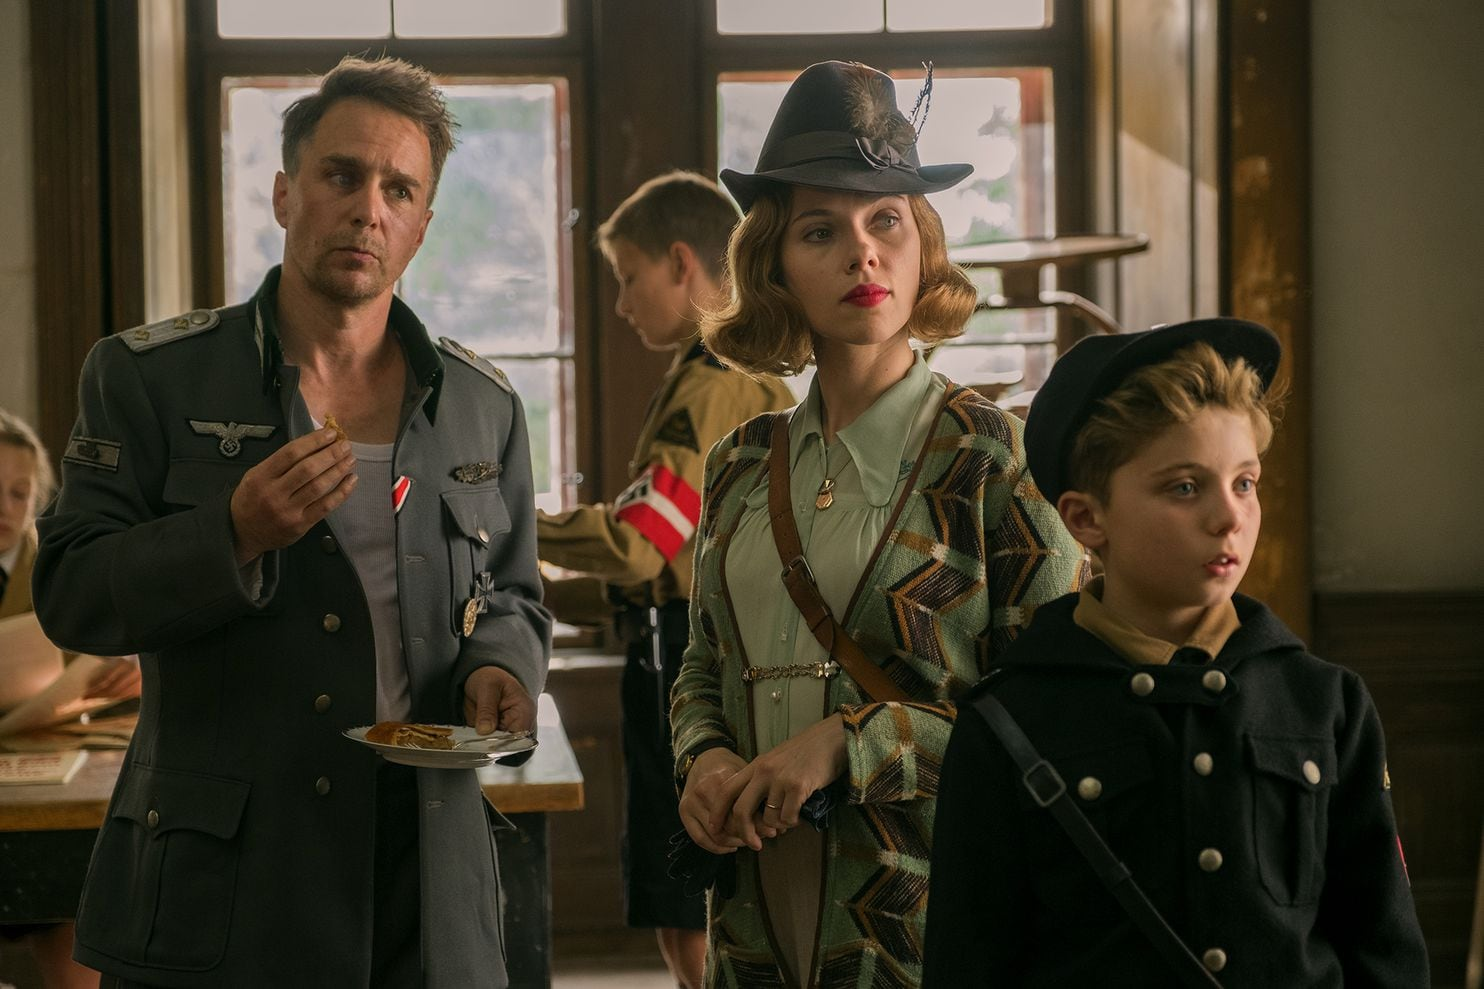 Captain Klenzendorf (Sam Rockwell) with Rosie (Scarlett Johansson,) Jojo's (Roman Griffin Davis) single mother and Jojo in the film Jojo Rabbit.